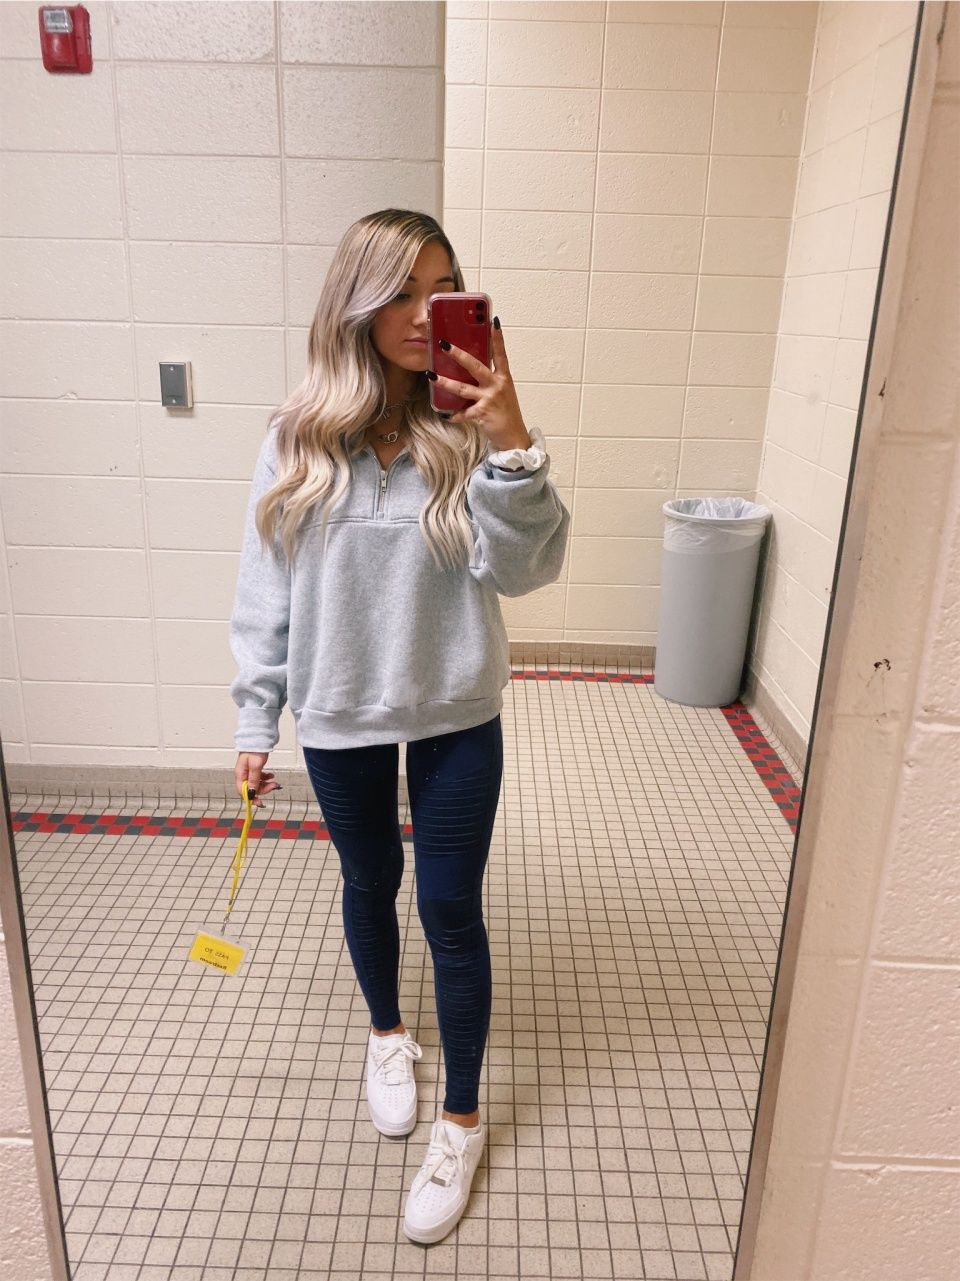 School Outfits With Leggings : school, outfits, leggings, Images, Yasminebateman, Outfits, Leggings,